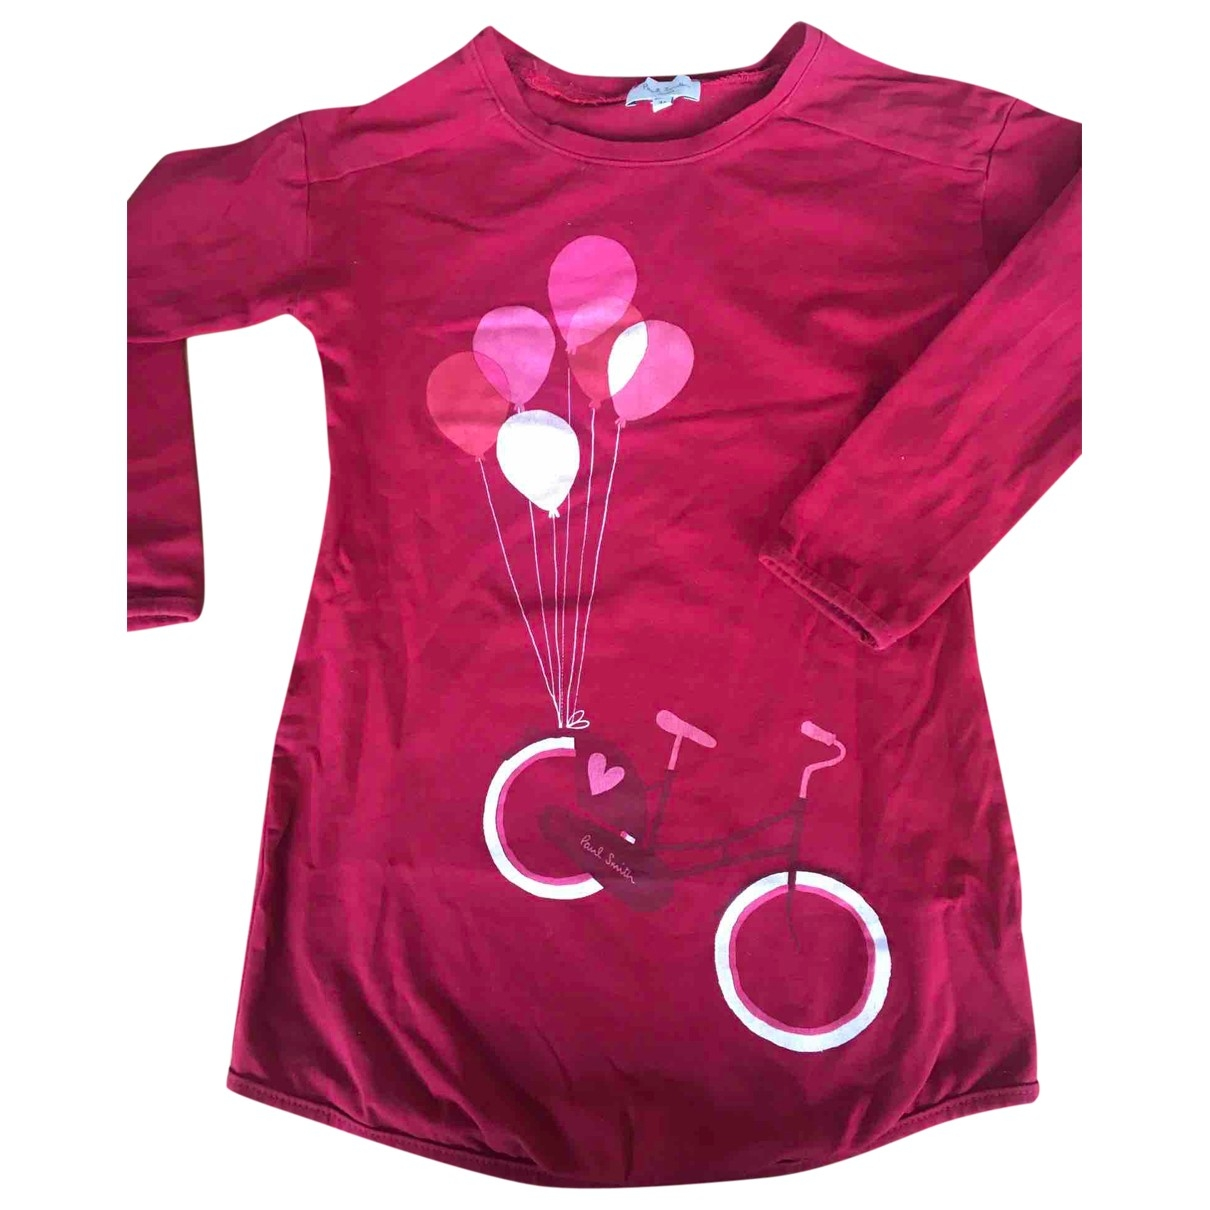 Paul Smith \N Red Cotton dress for Kids 3 years - up to 98cm FR